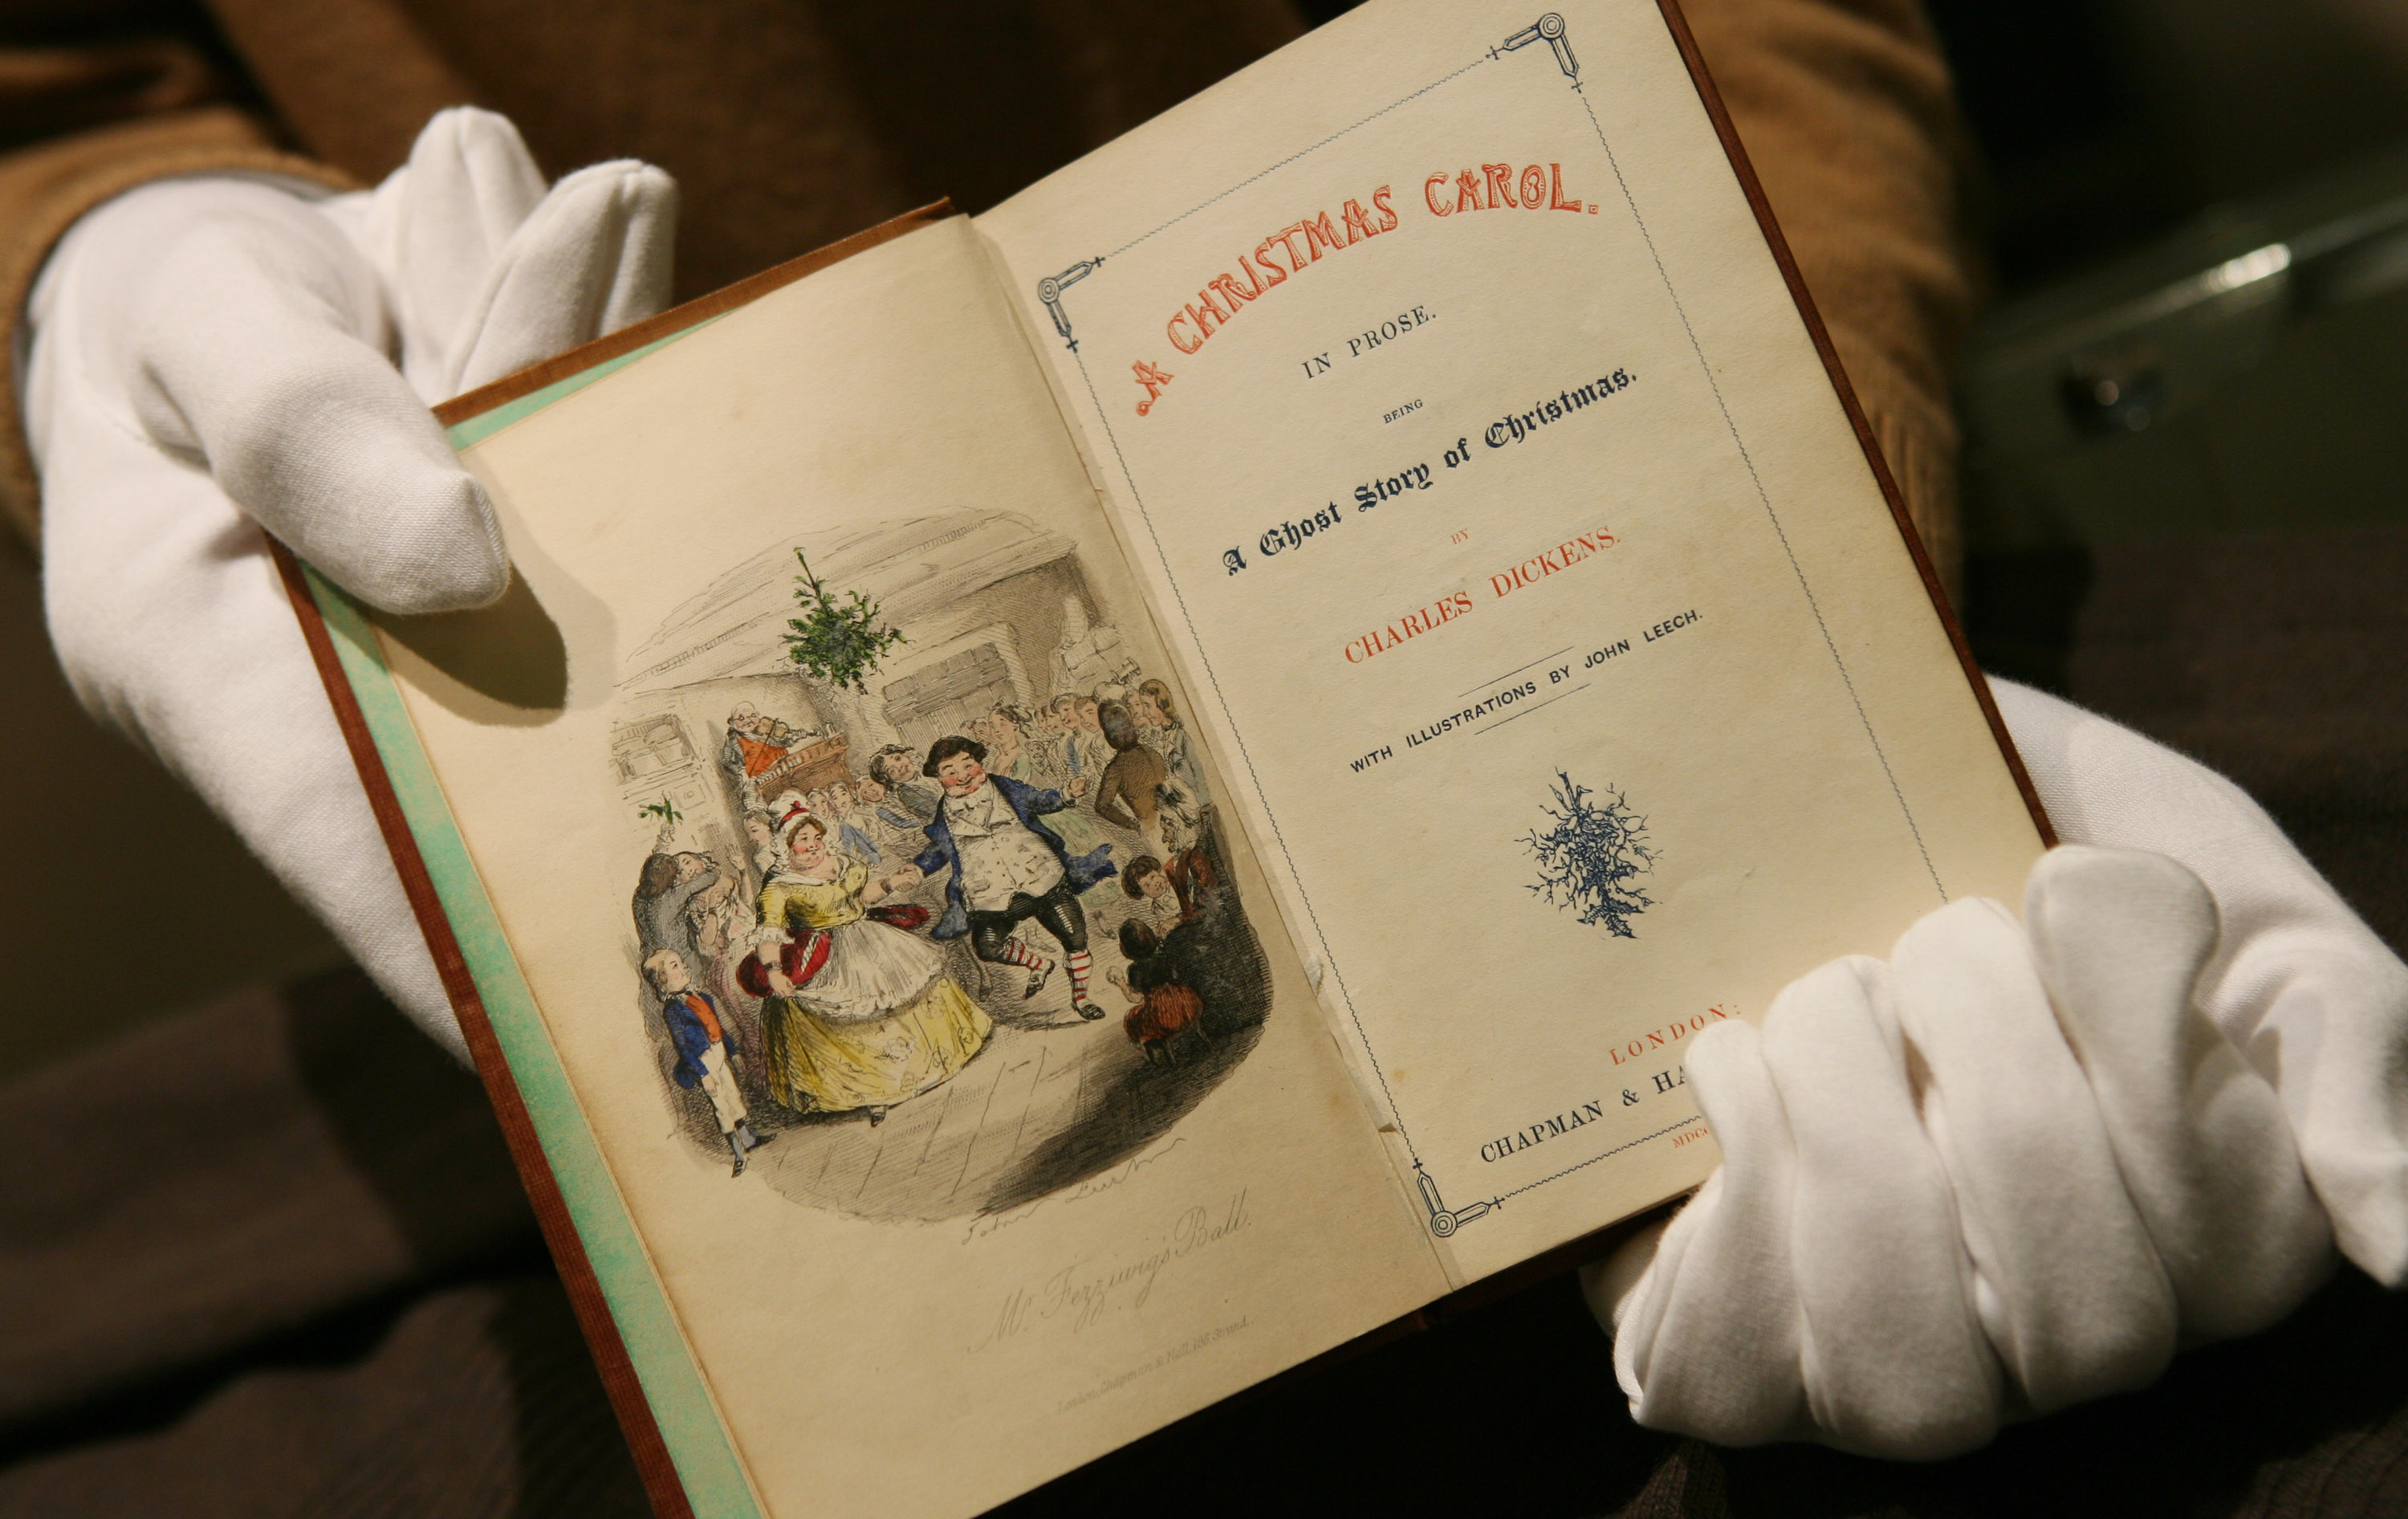 Who Wrote A Christmas Carol.A Christmas Carol Is Not Charles Dickens Only Holiday Story